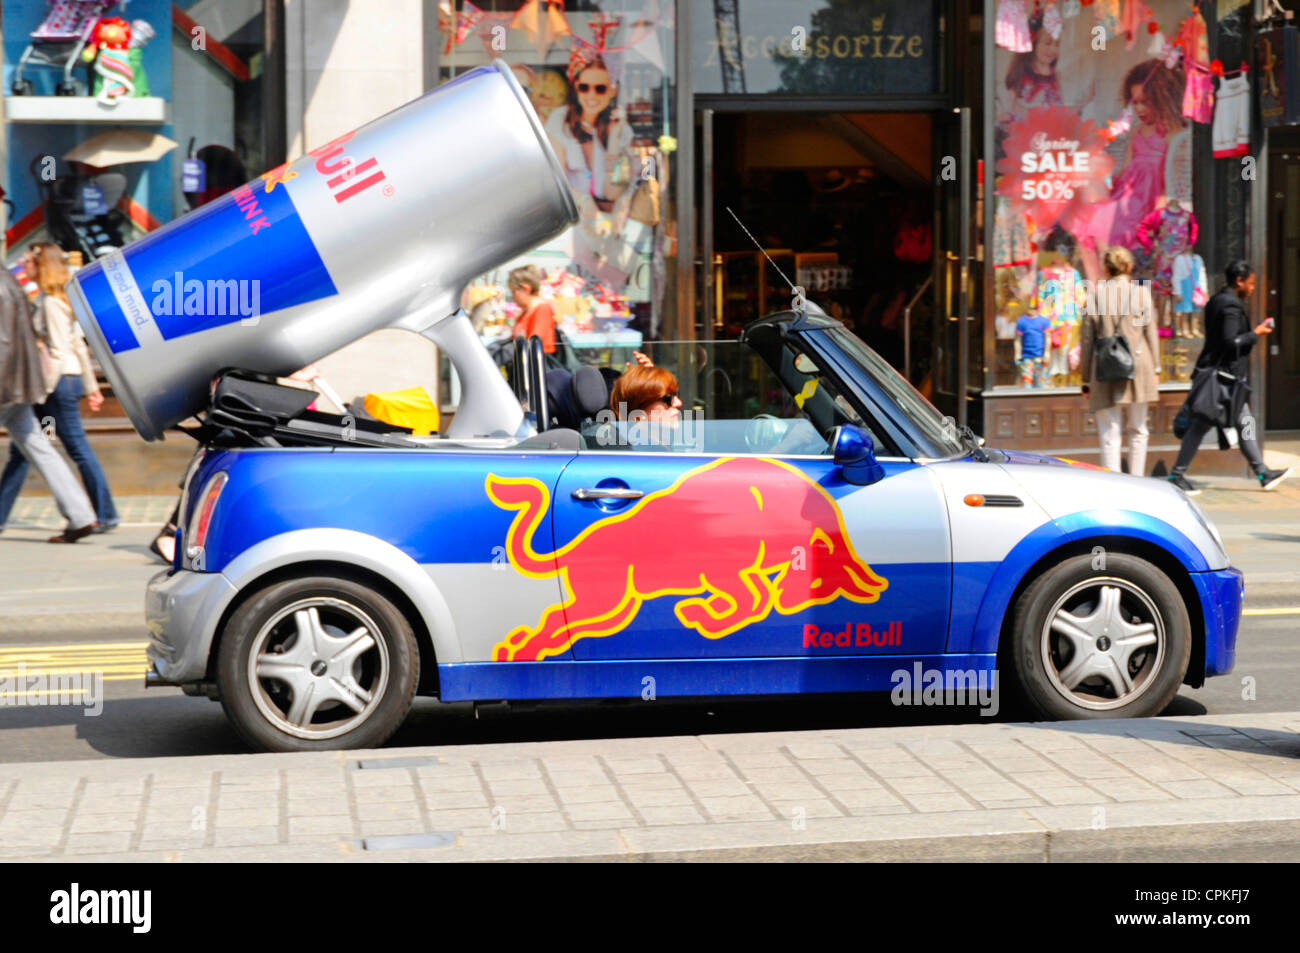 Red Bull Kühlschrank Promotion : Cans red bull stockfotos cans red bull bilder alamy